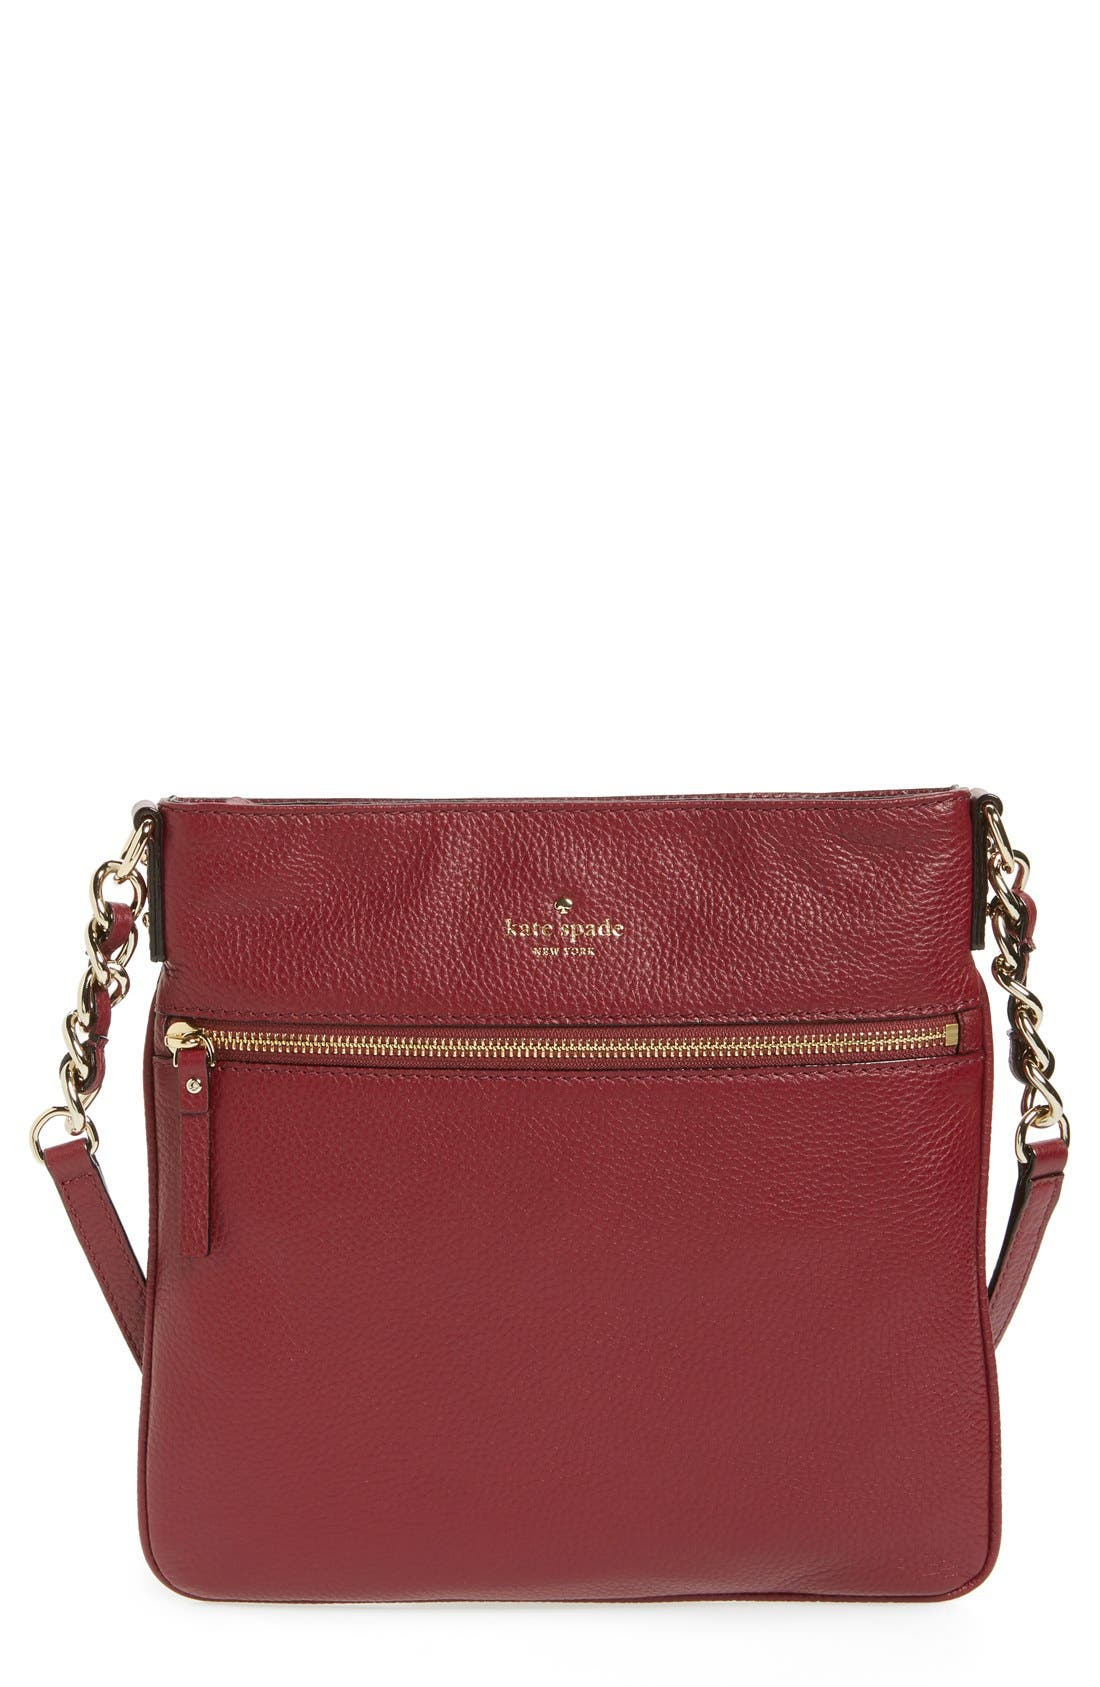 Main Image - kate spade new york 'cobble hill - ellen' leather crossbody bag